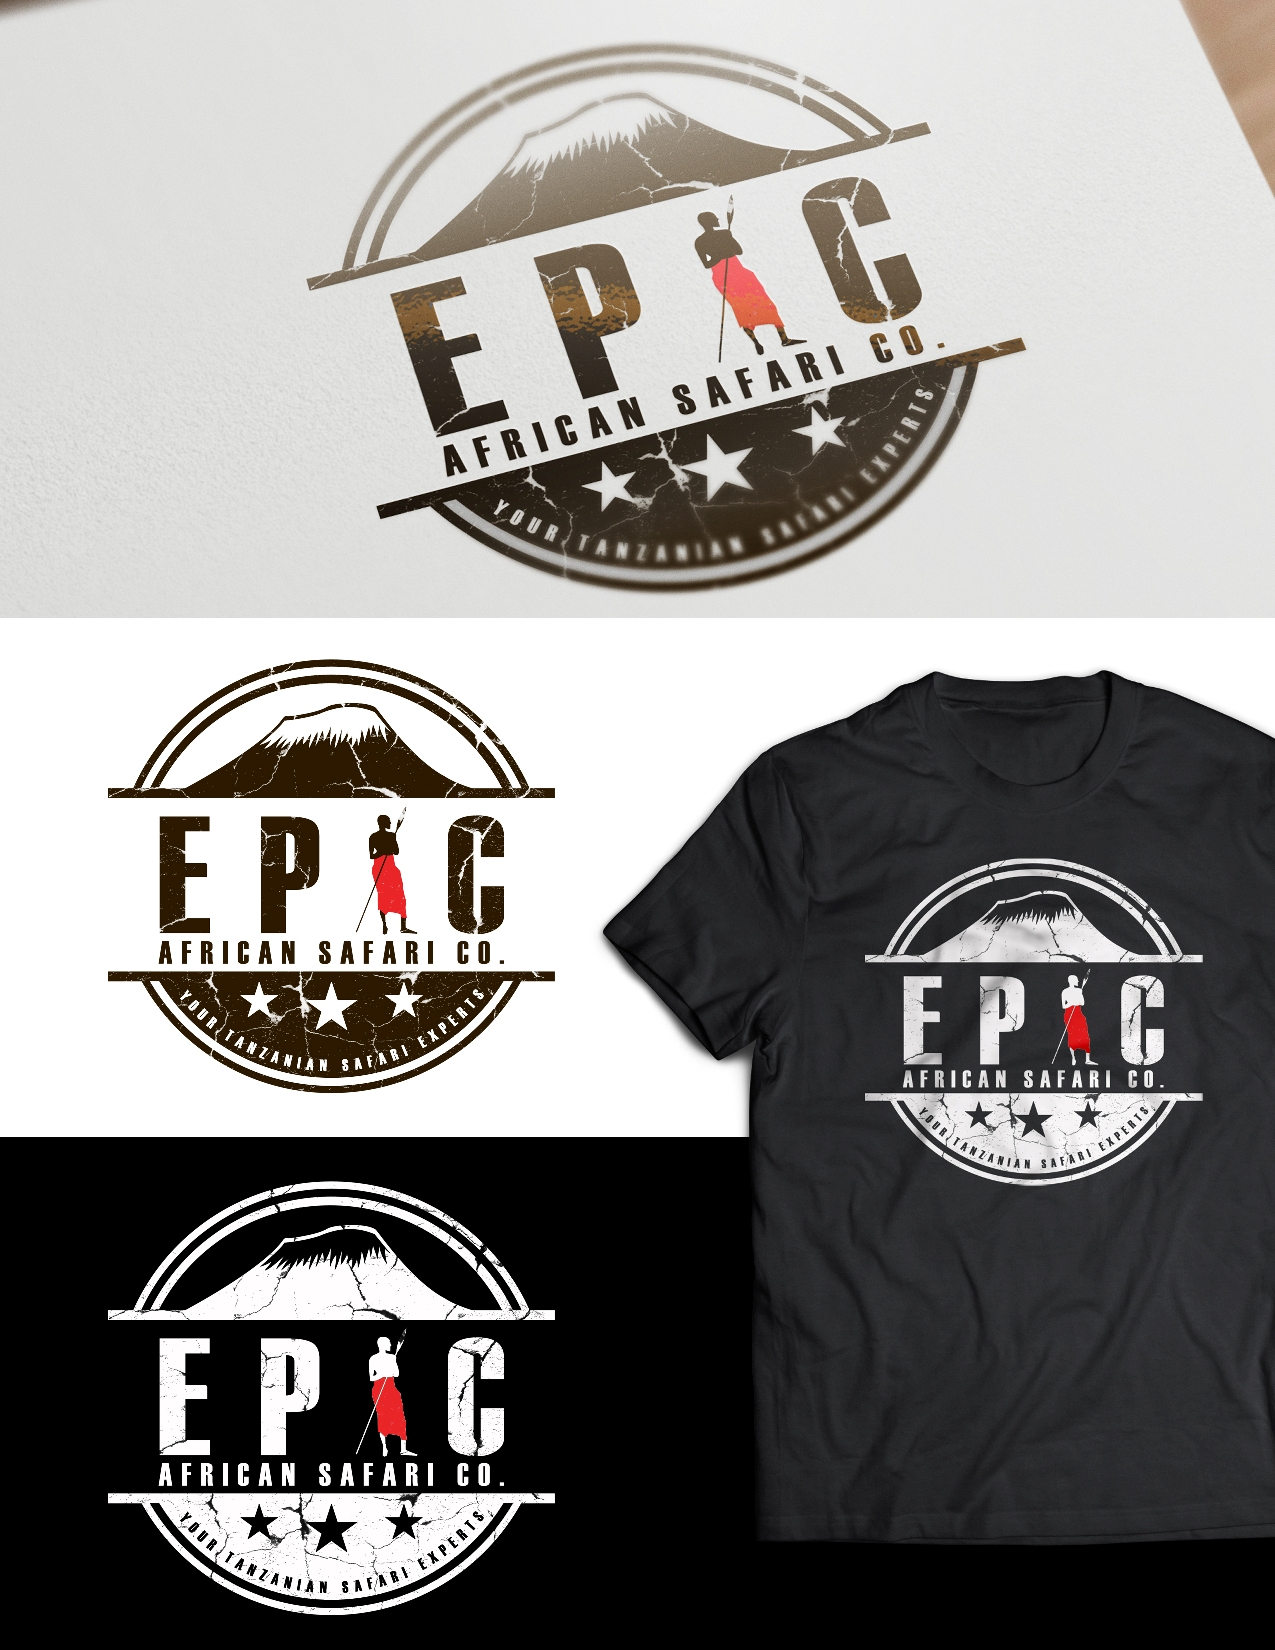 Logo Design by Juan_Kata - Entry No. 48 in the Logo Design Contest Epic logo design.